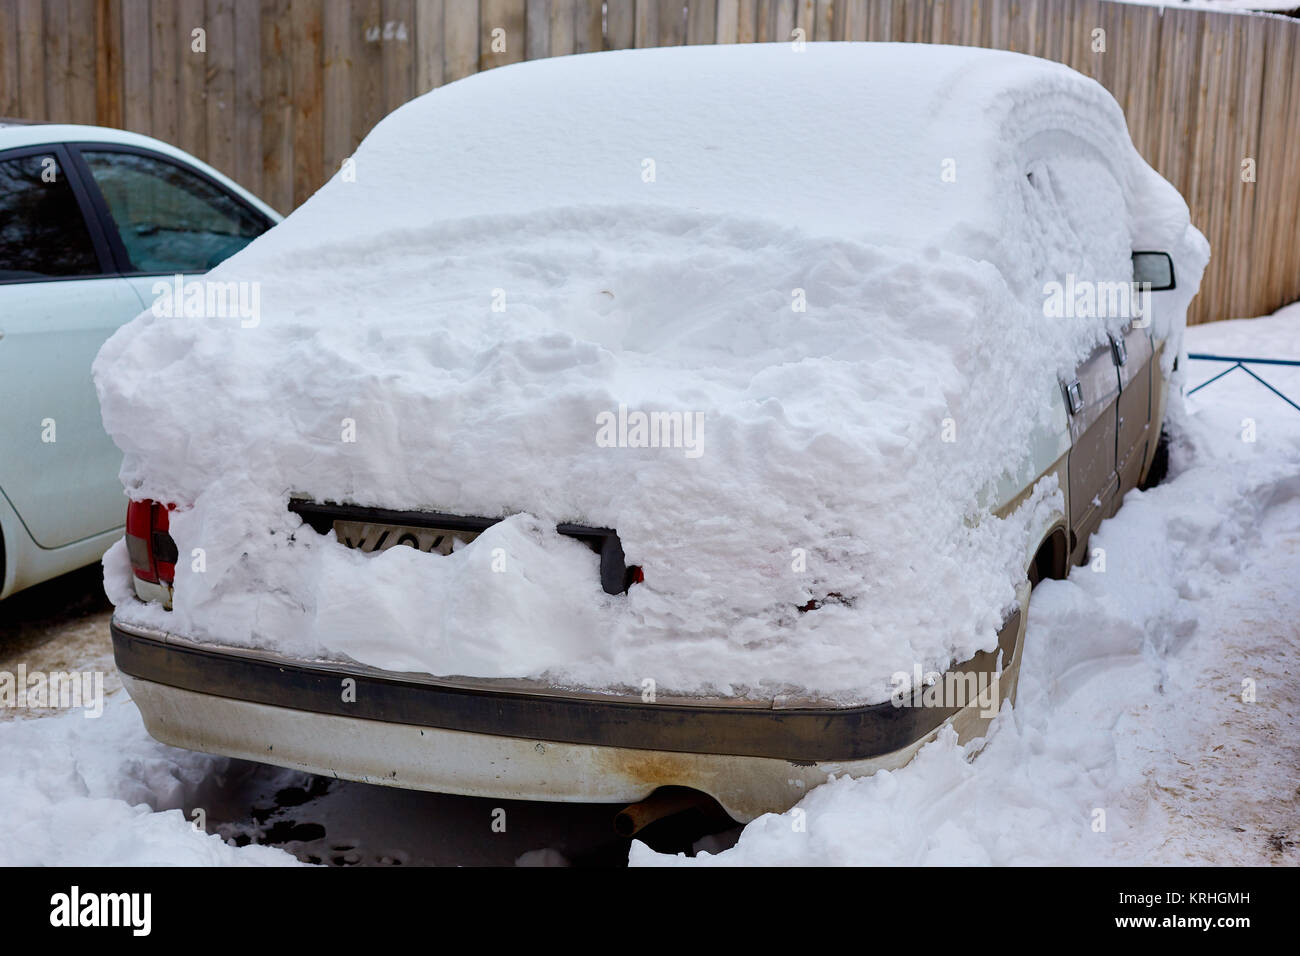 parked car covered with snow - Stock Image